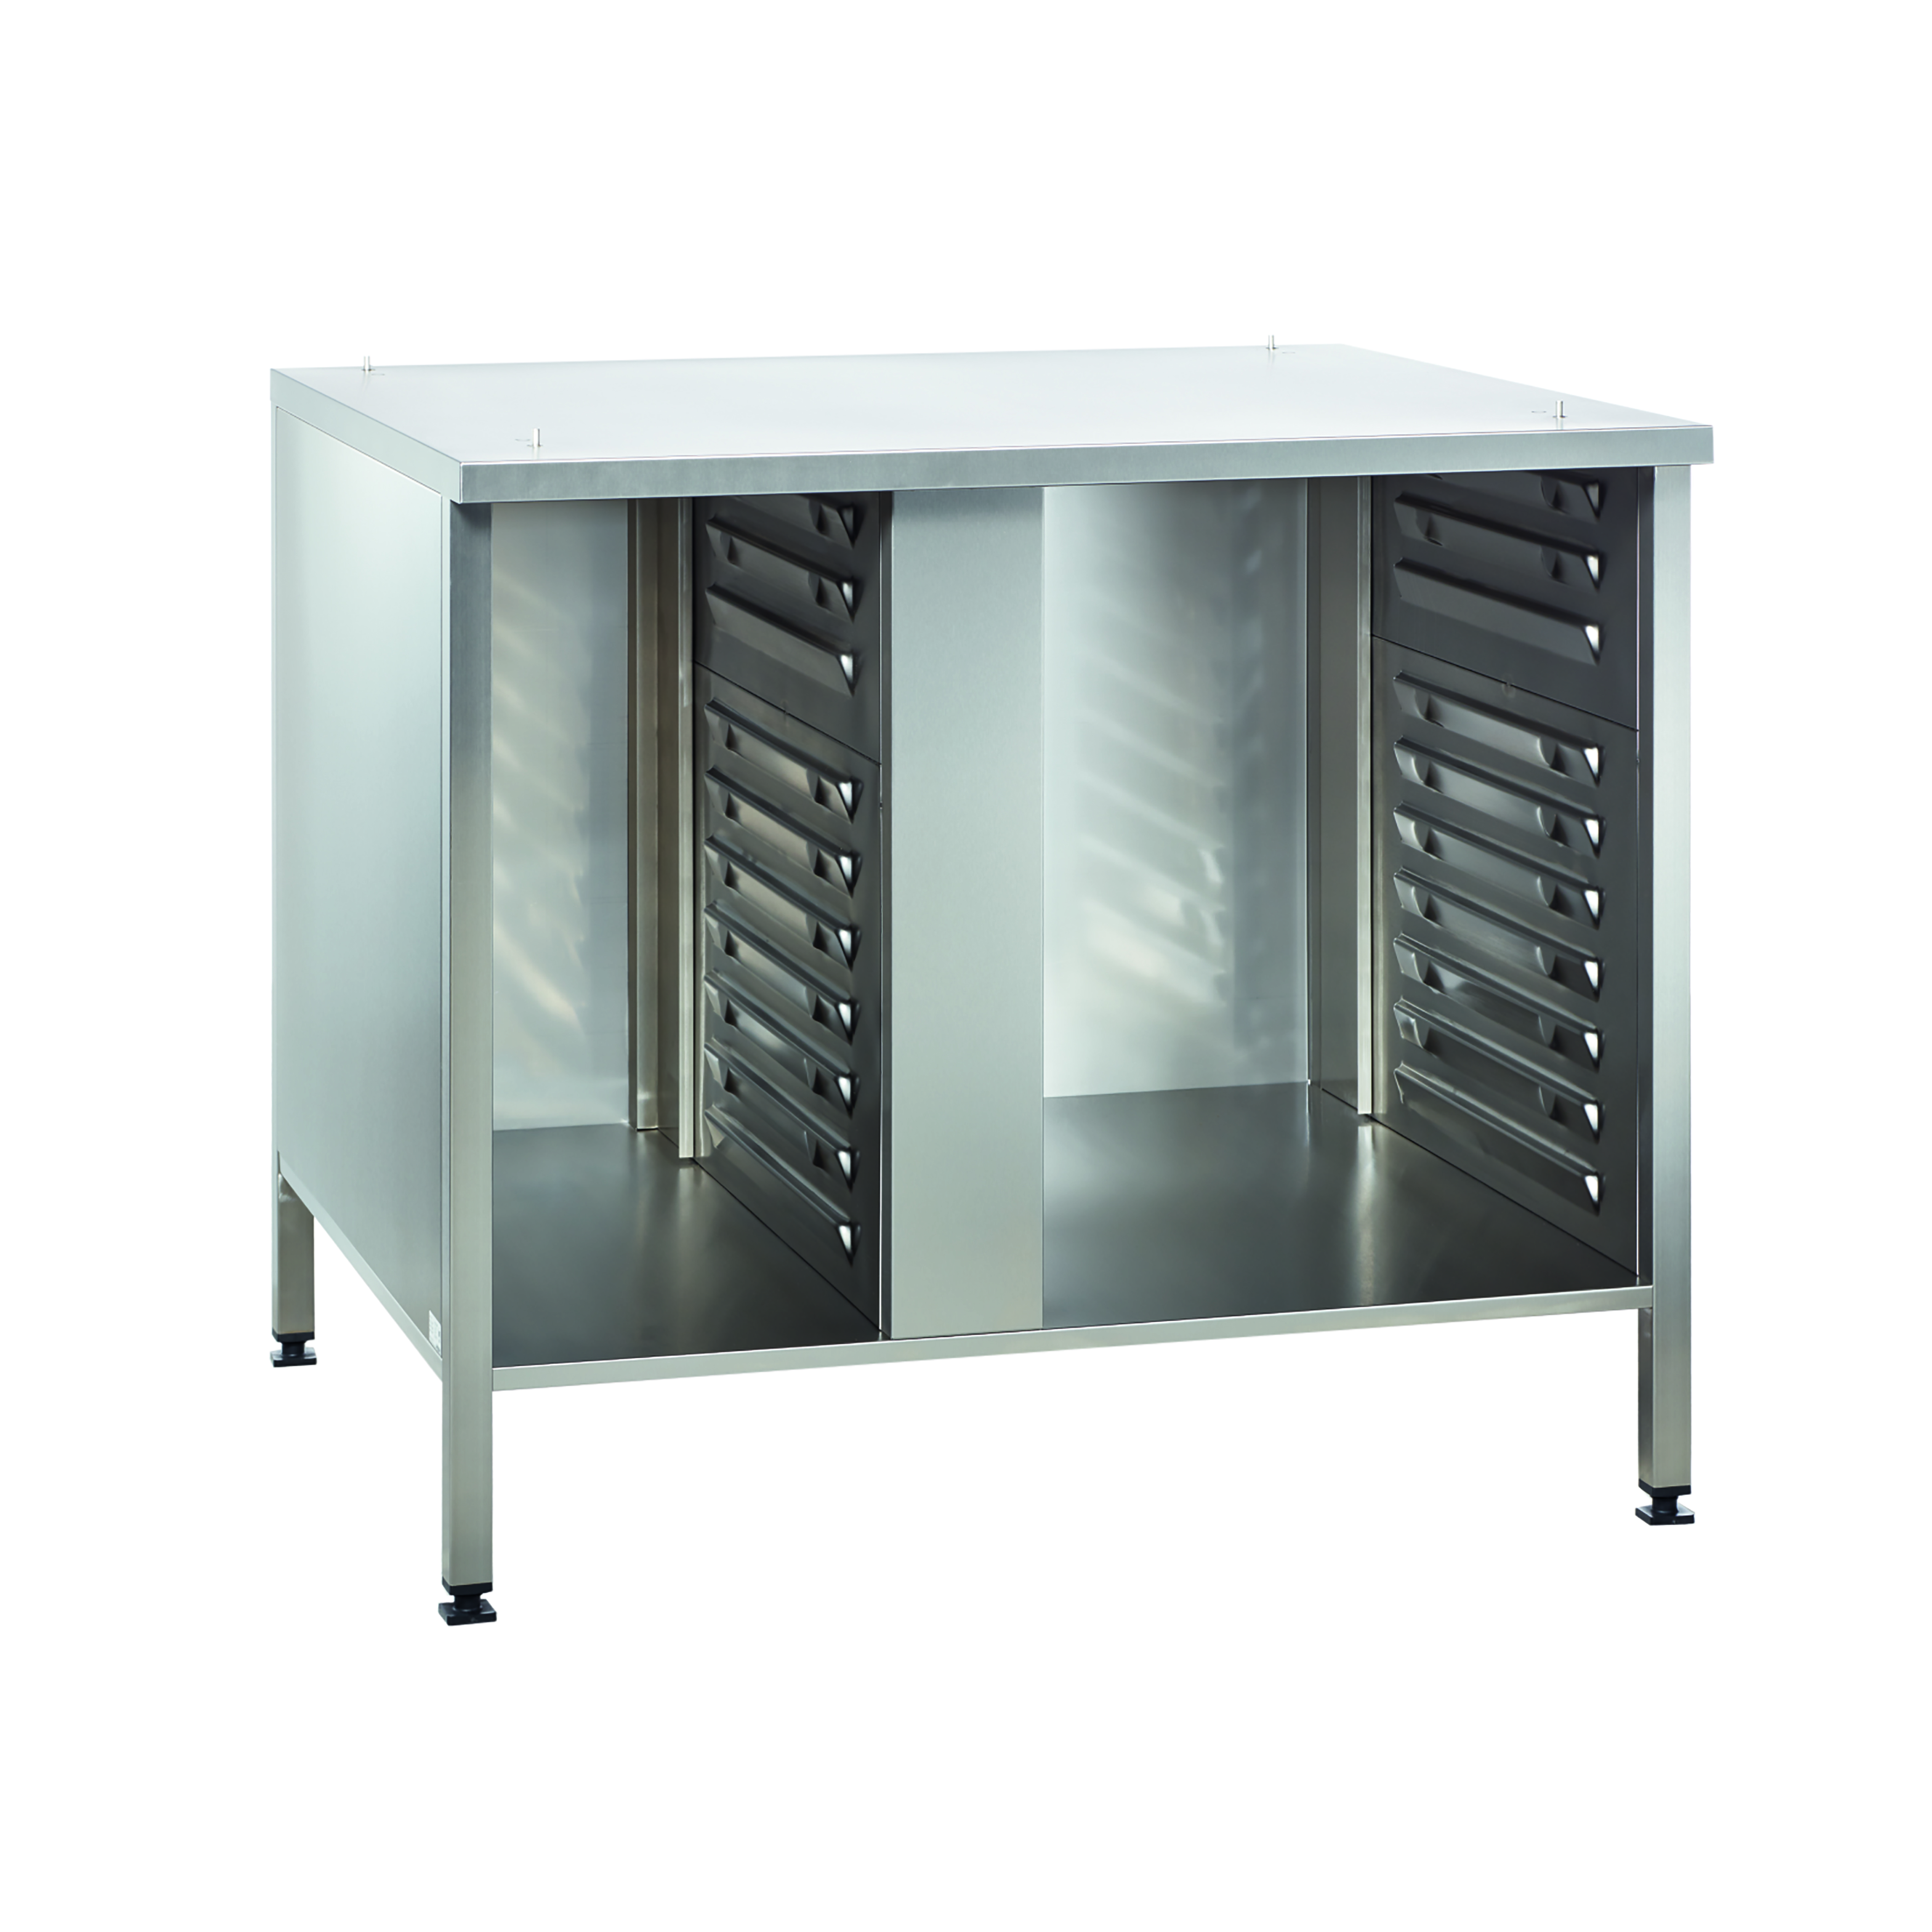 RATIONAL 60.30.342 equipment stand, oven